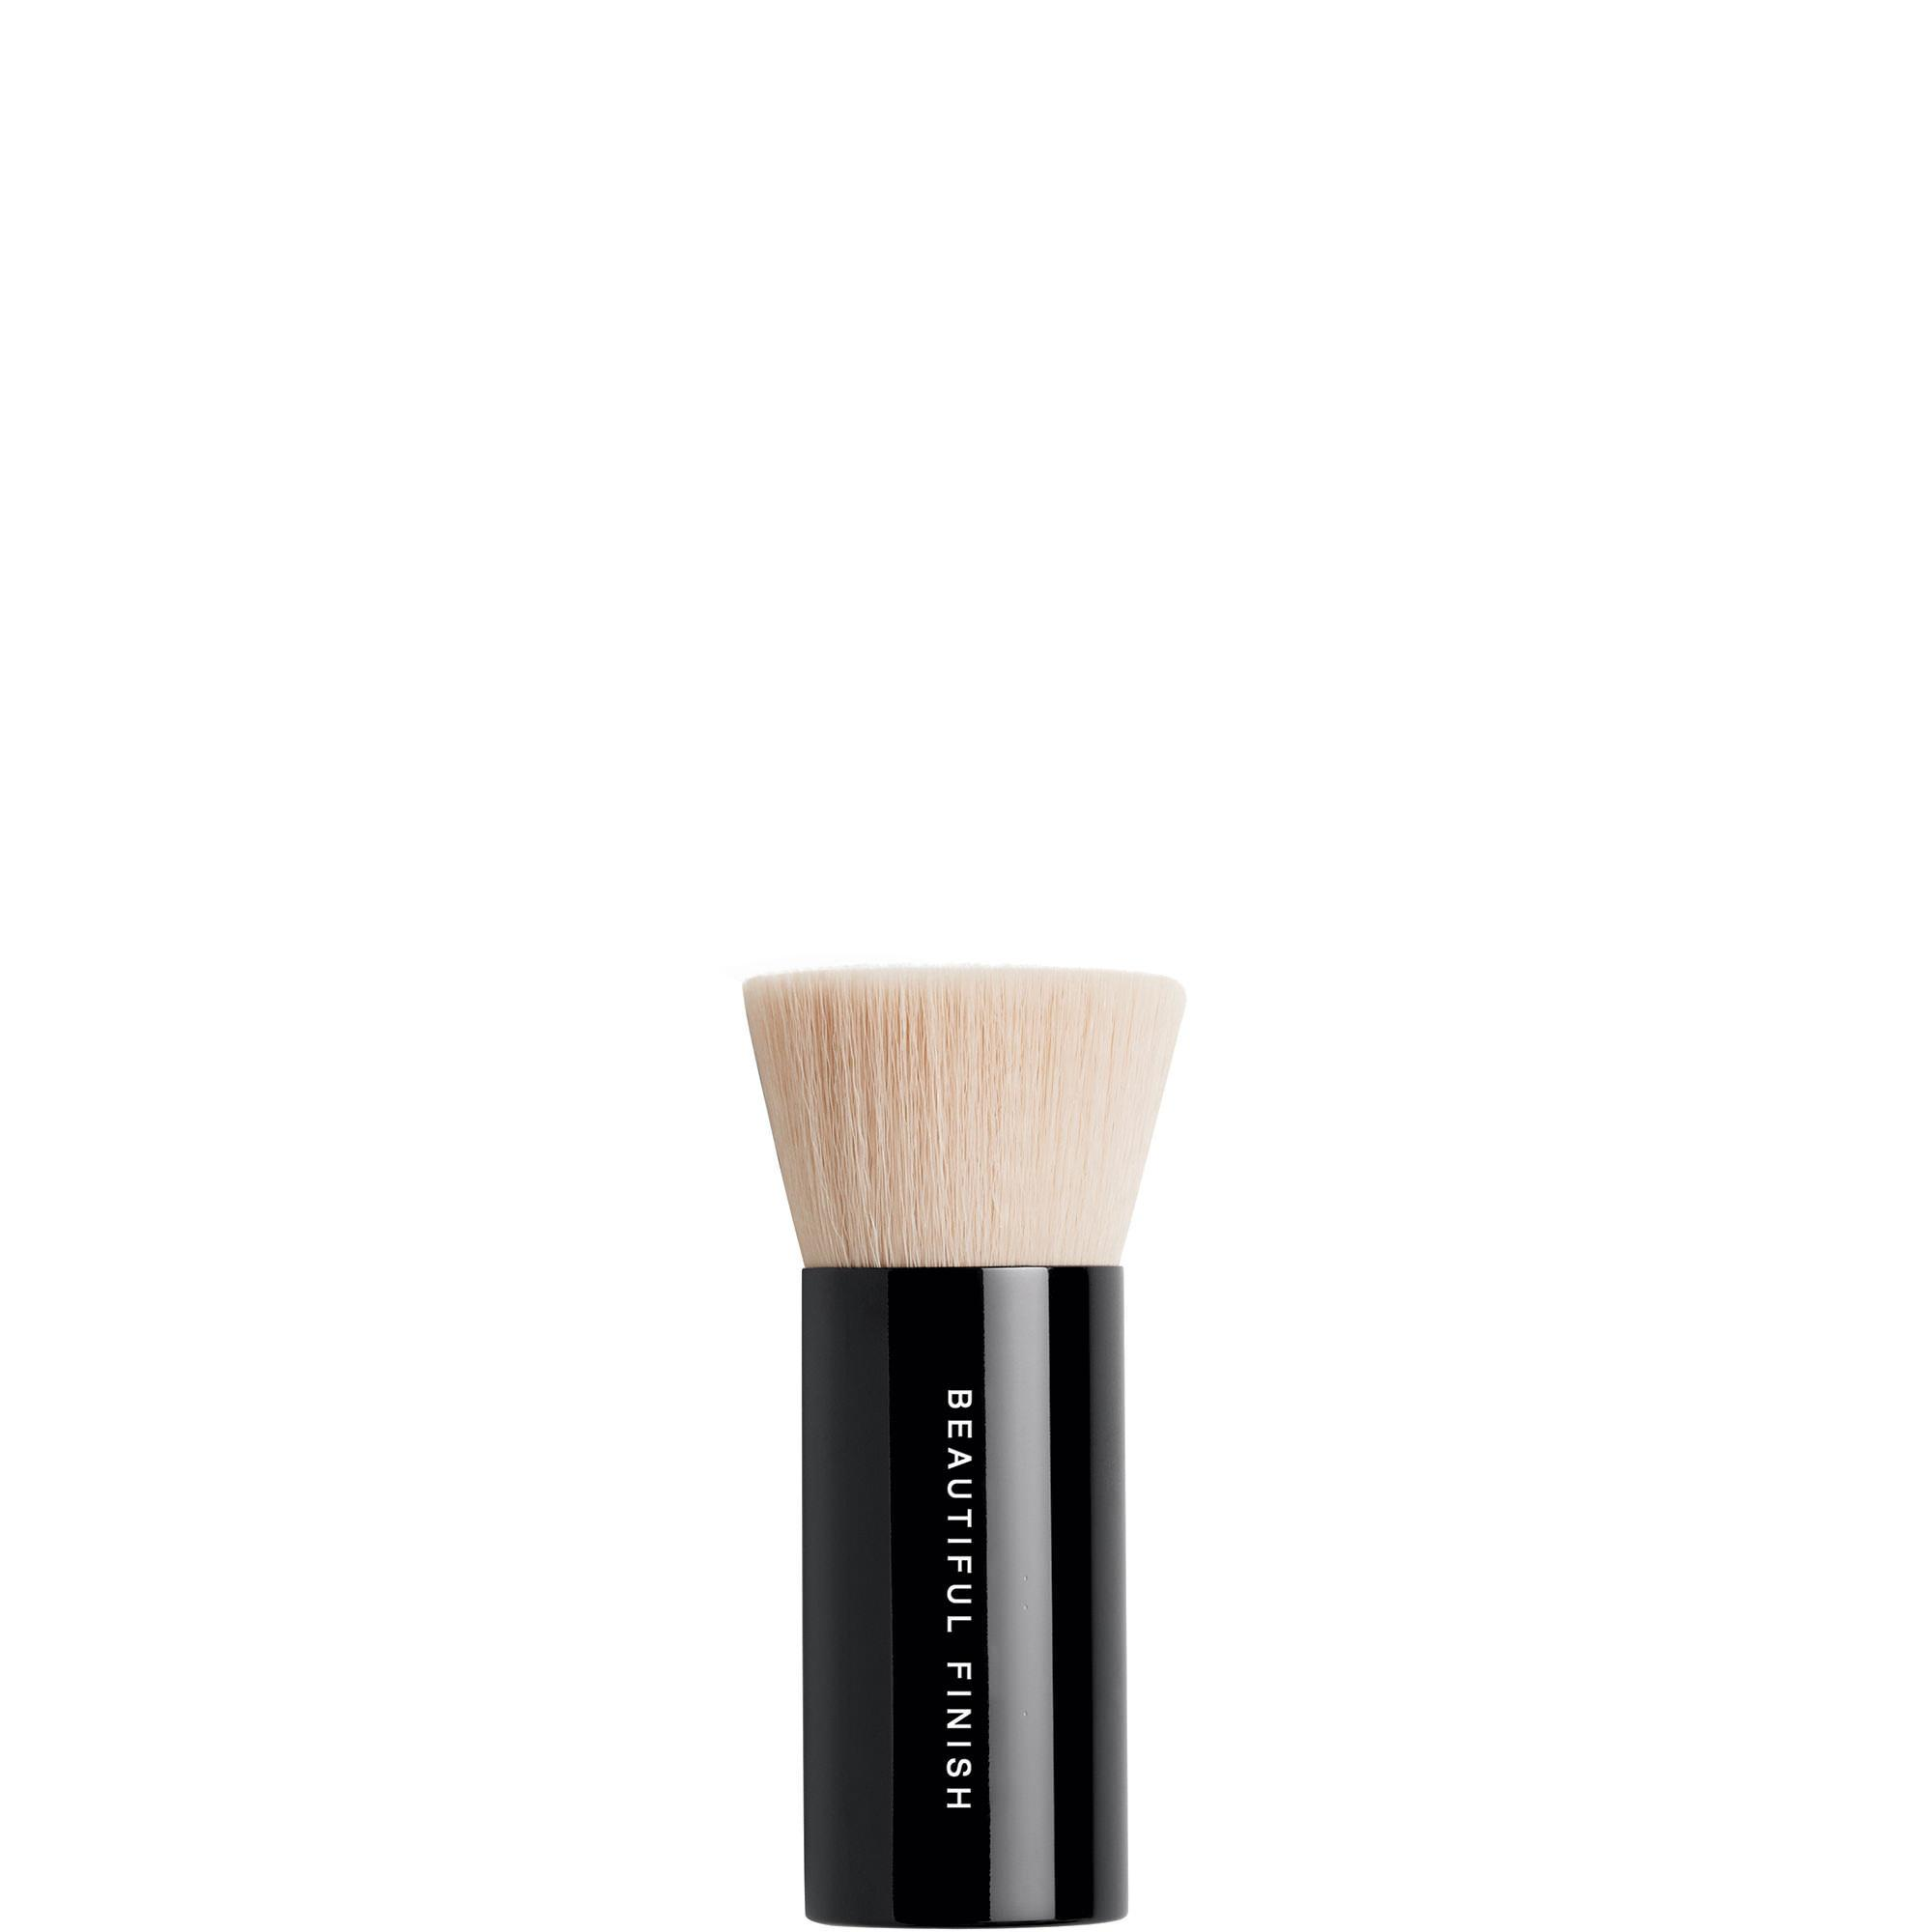 Bareminerals Original Powder Foundation Brush Brown Thomas